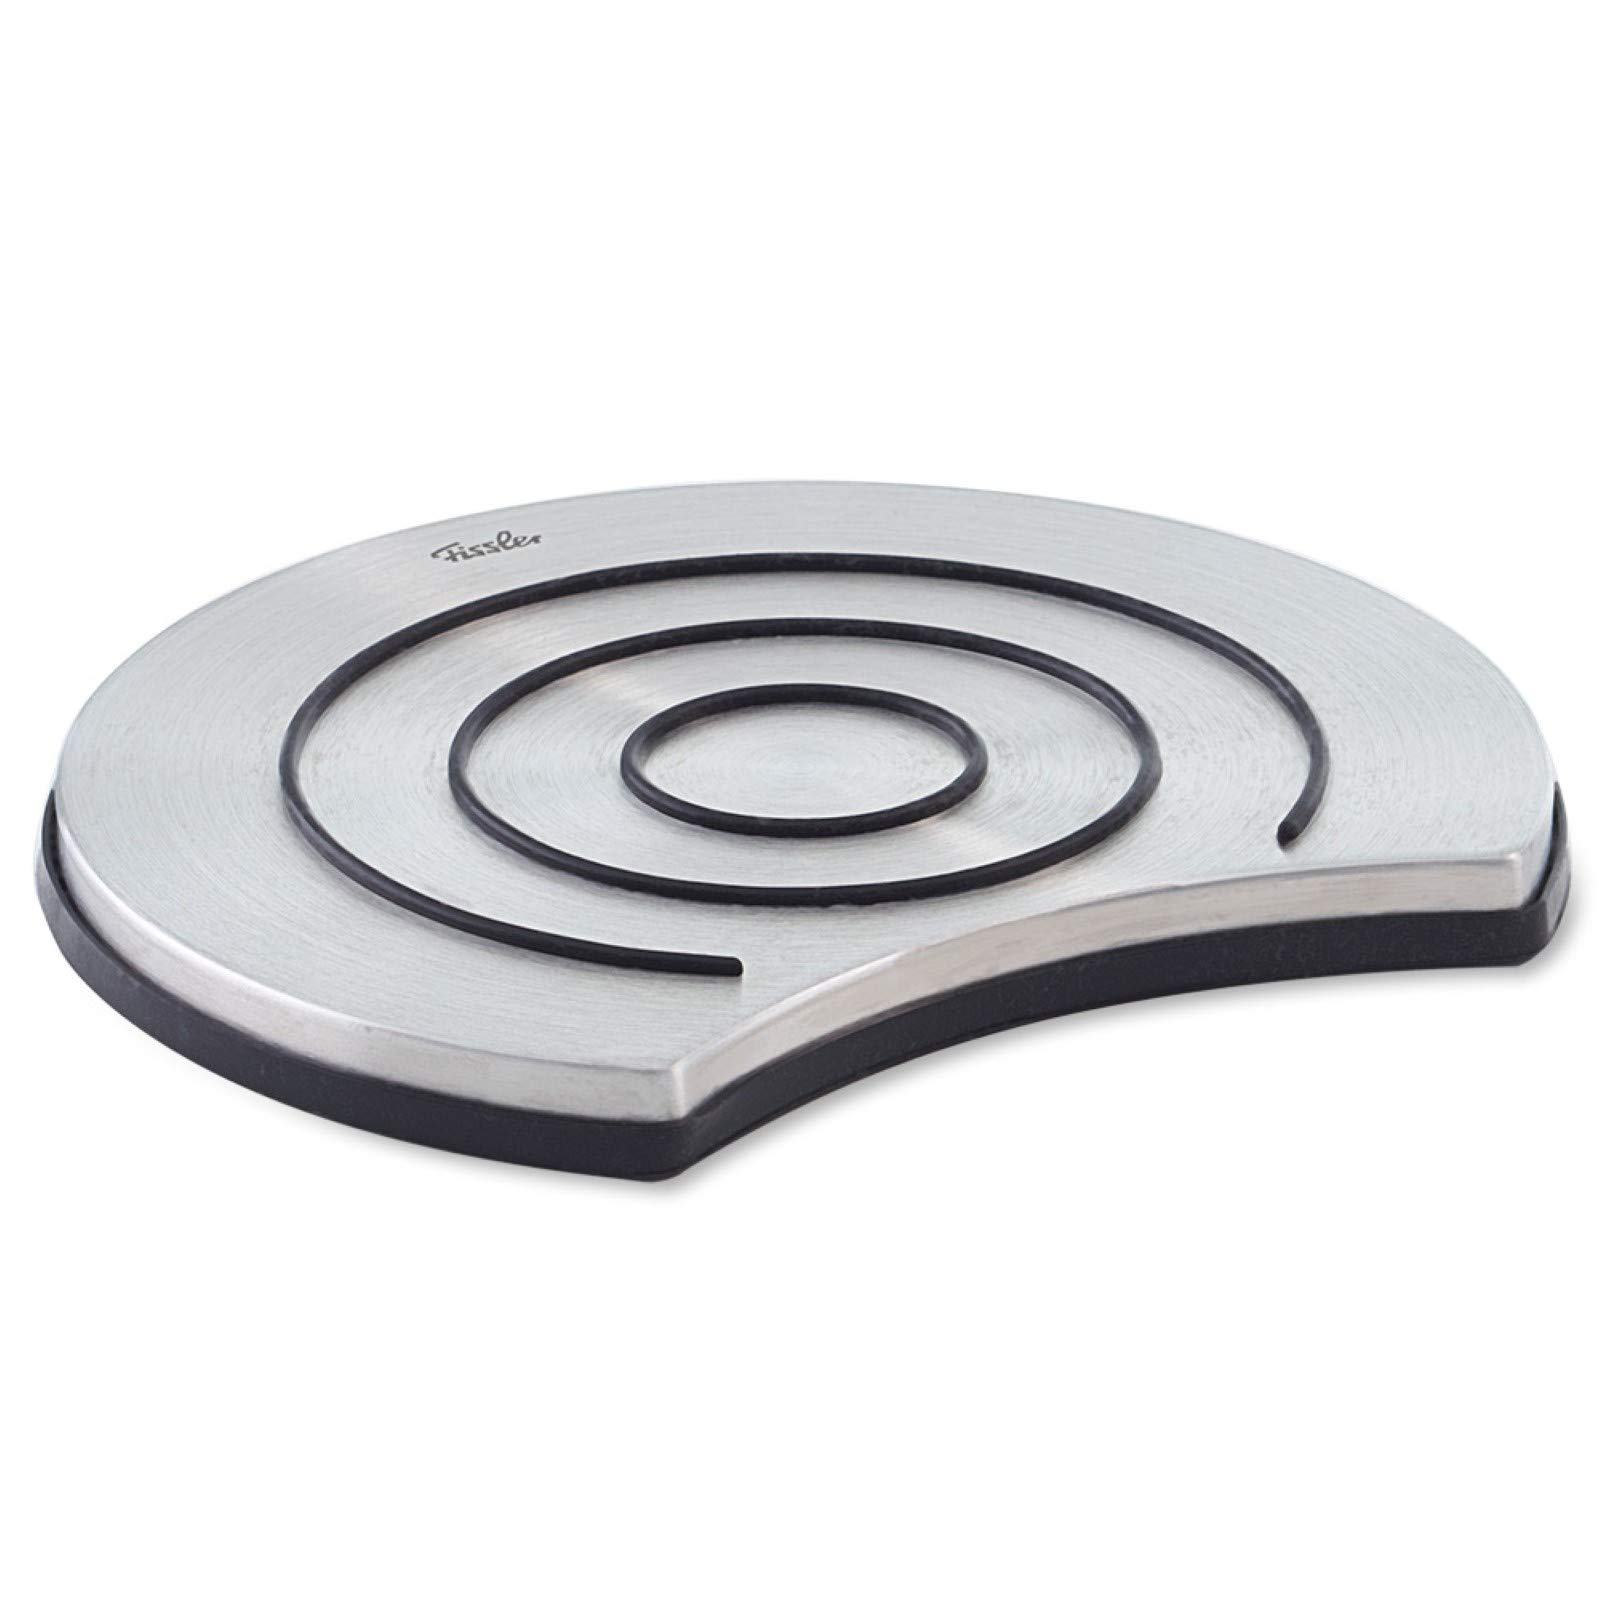 Fissler 020 767 00 000 Magic Pan Rest by Fissler USA